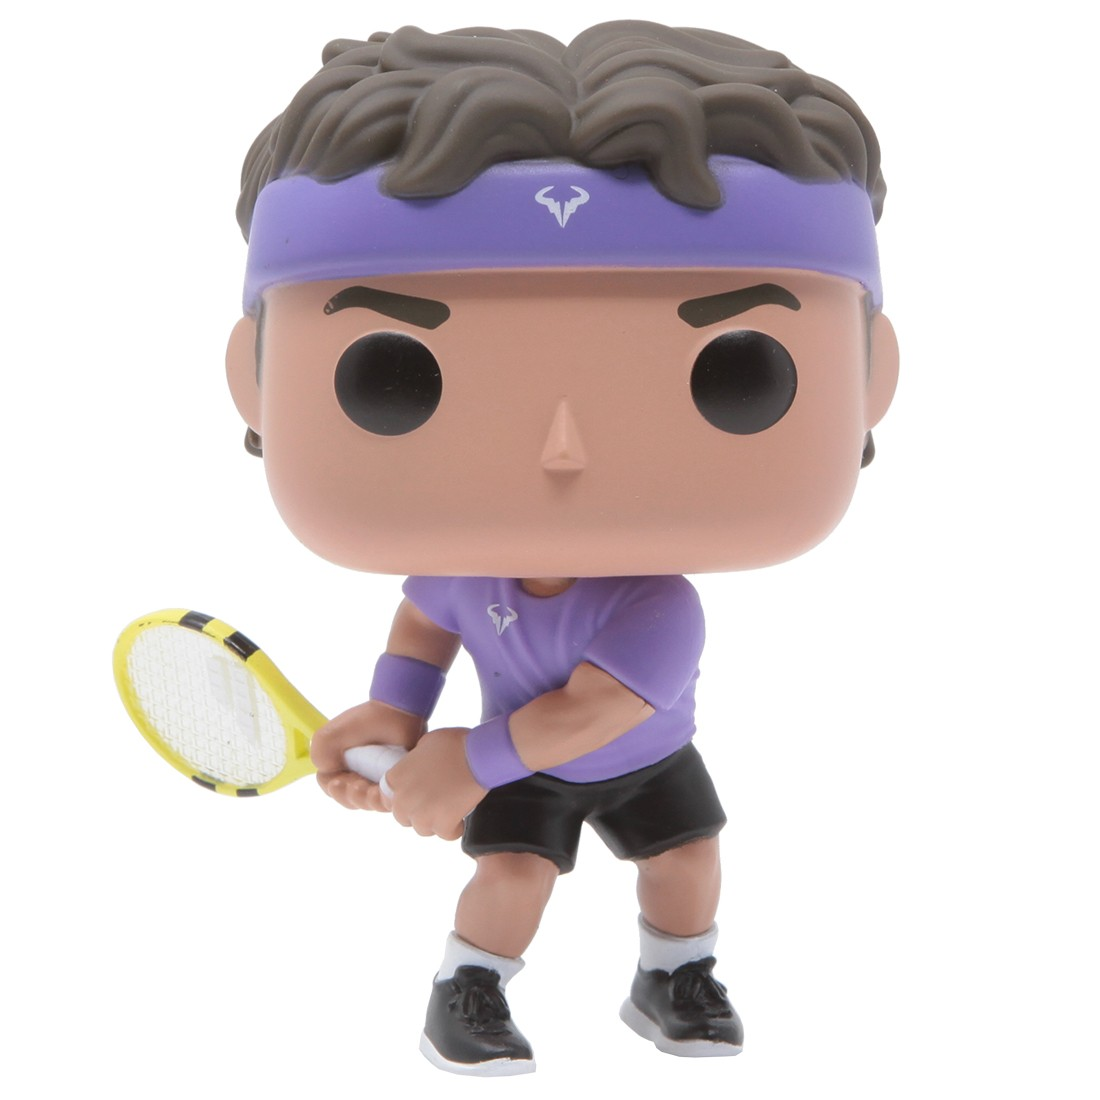 Funko POP Tennis Legends - Rafael Nadal (purple)